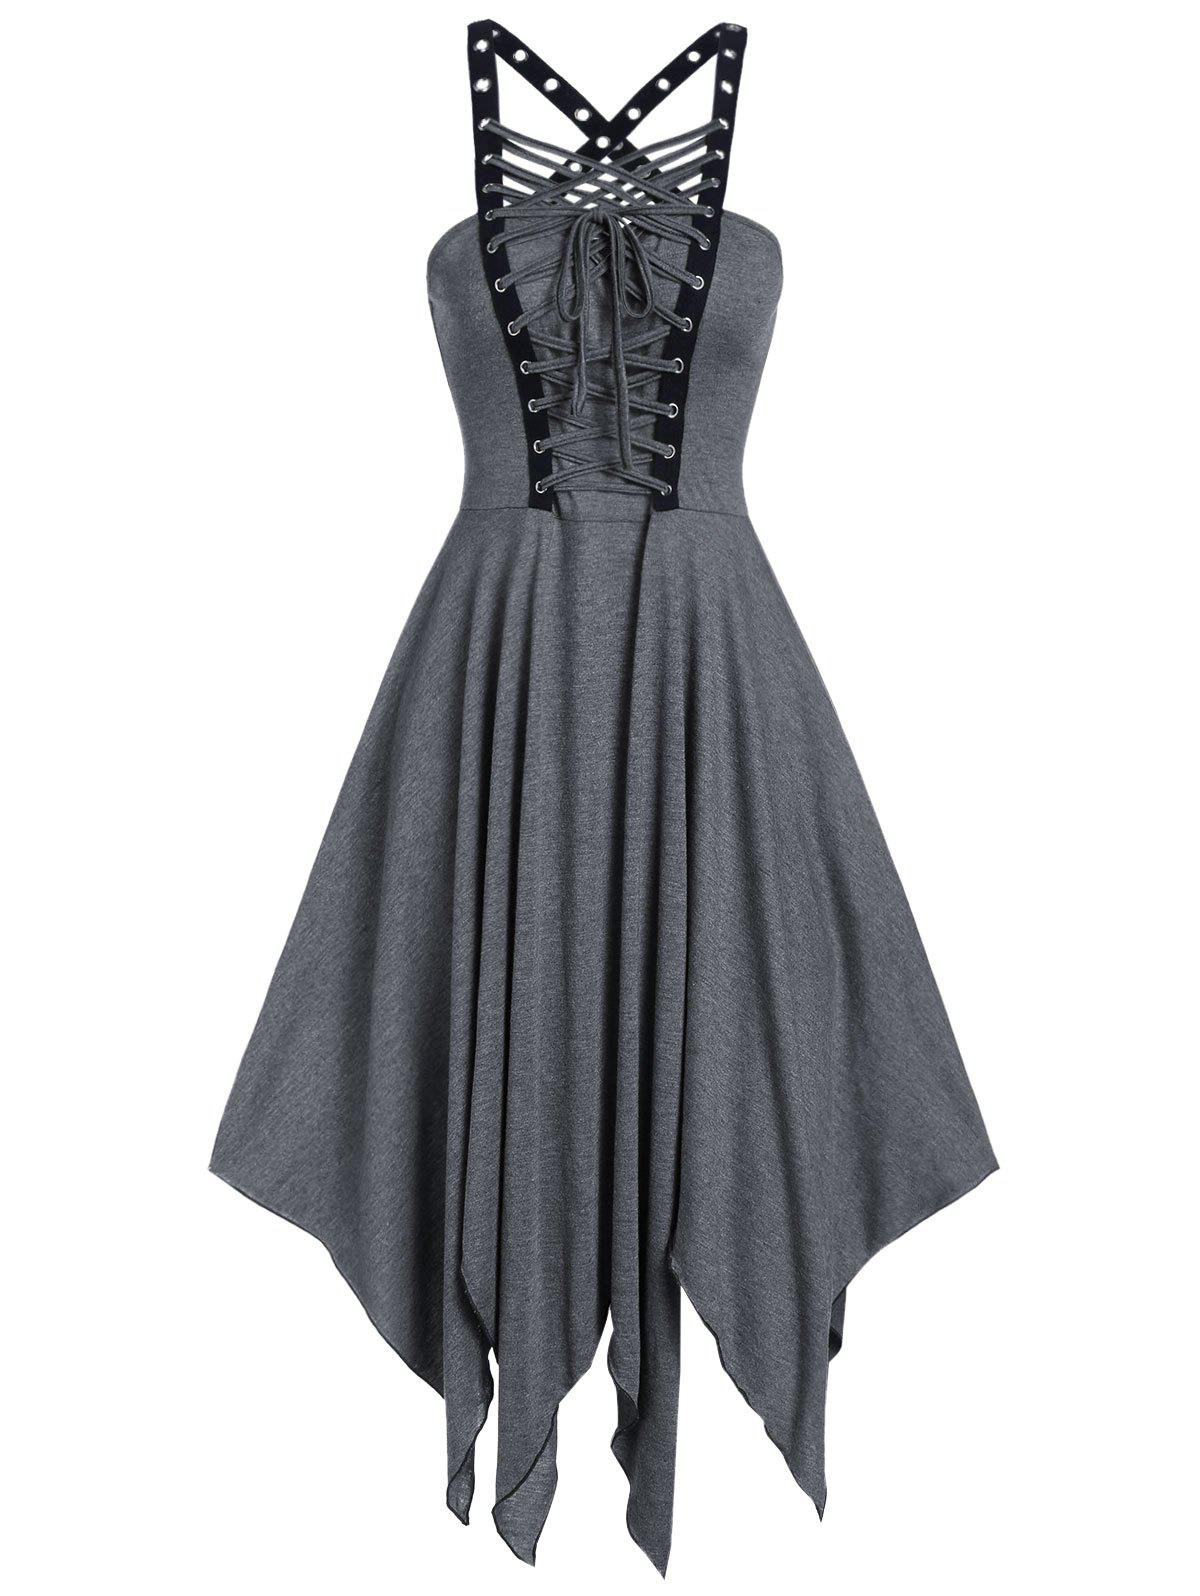 Sleeveless Lace-up Front Grommet Handkerchief Gothic Dress - ASH GRAY 3XL